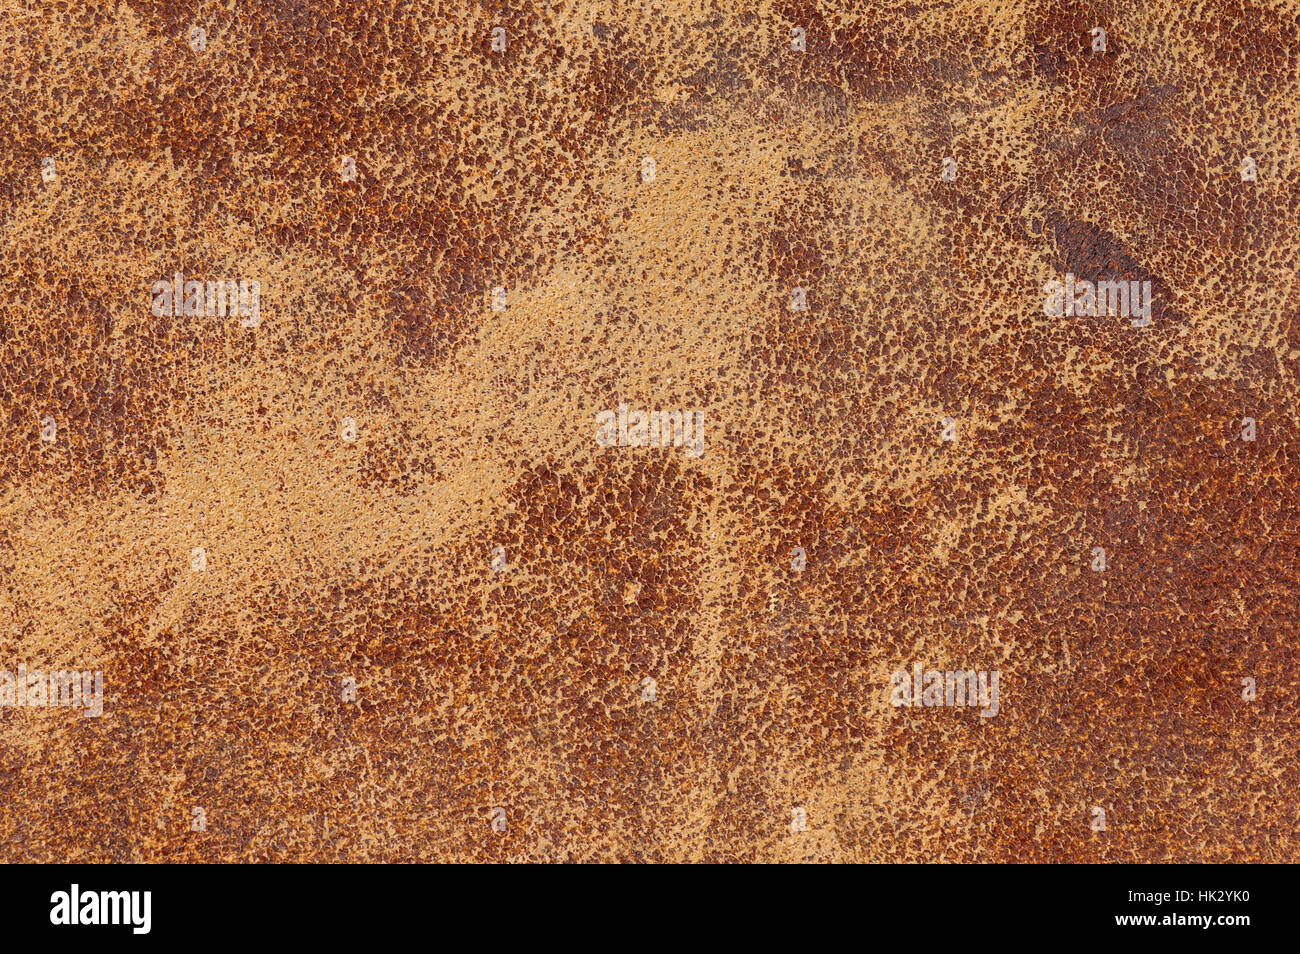 old distressed worn leather background texture - Stock Image